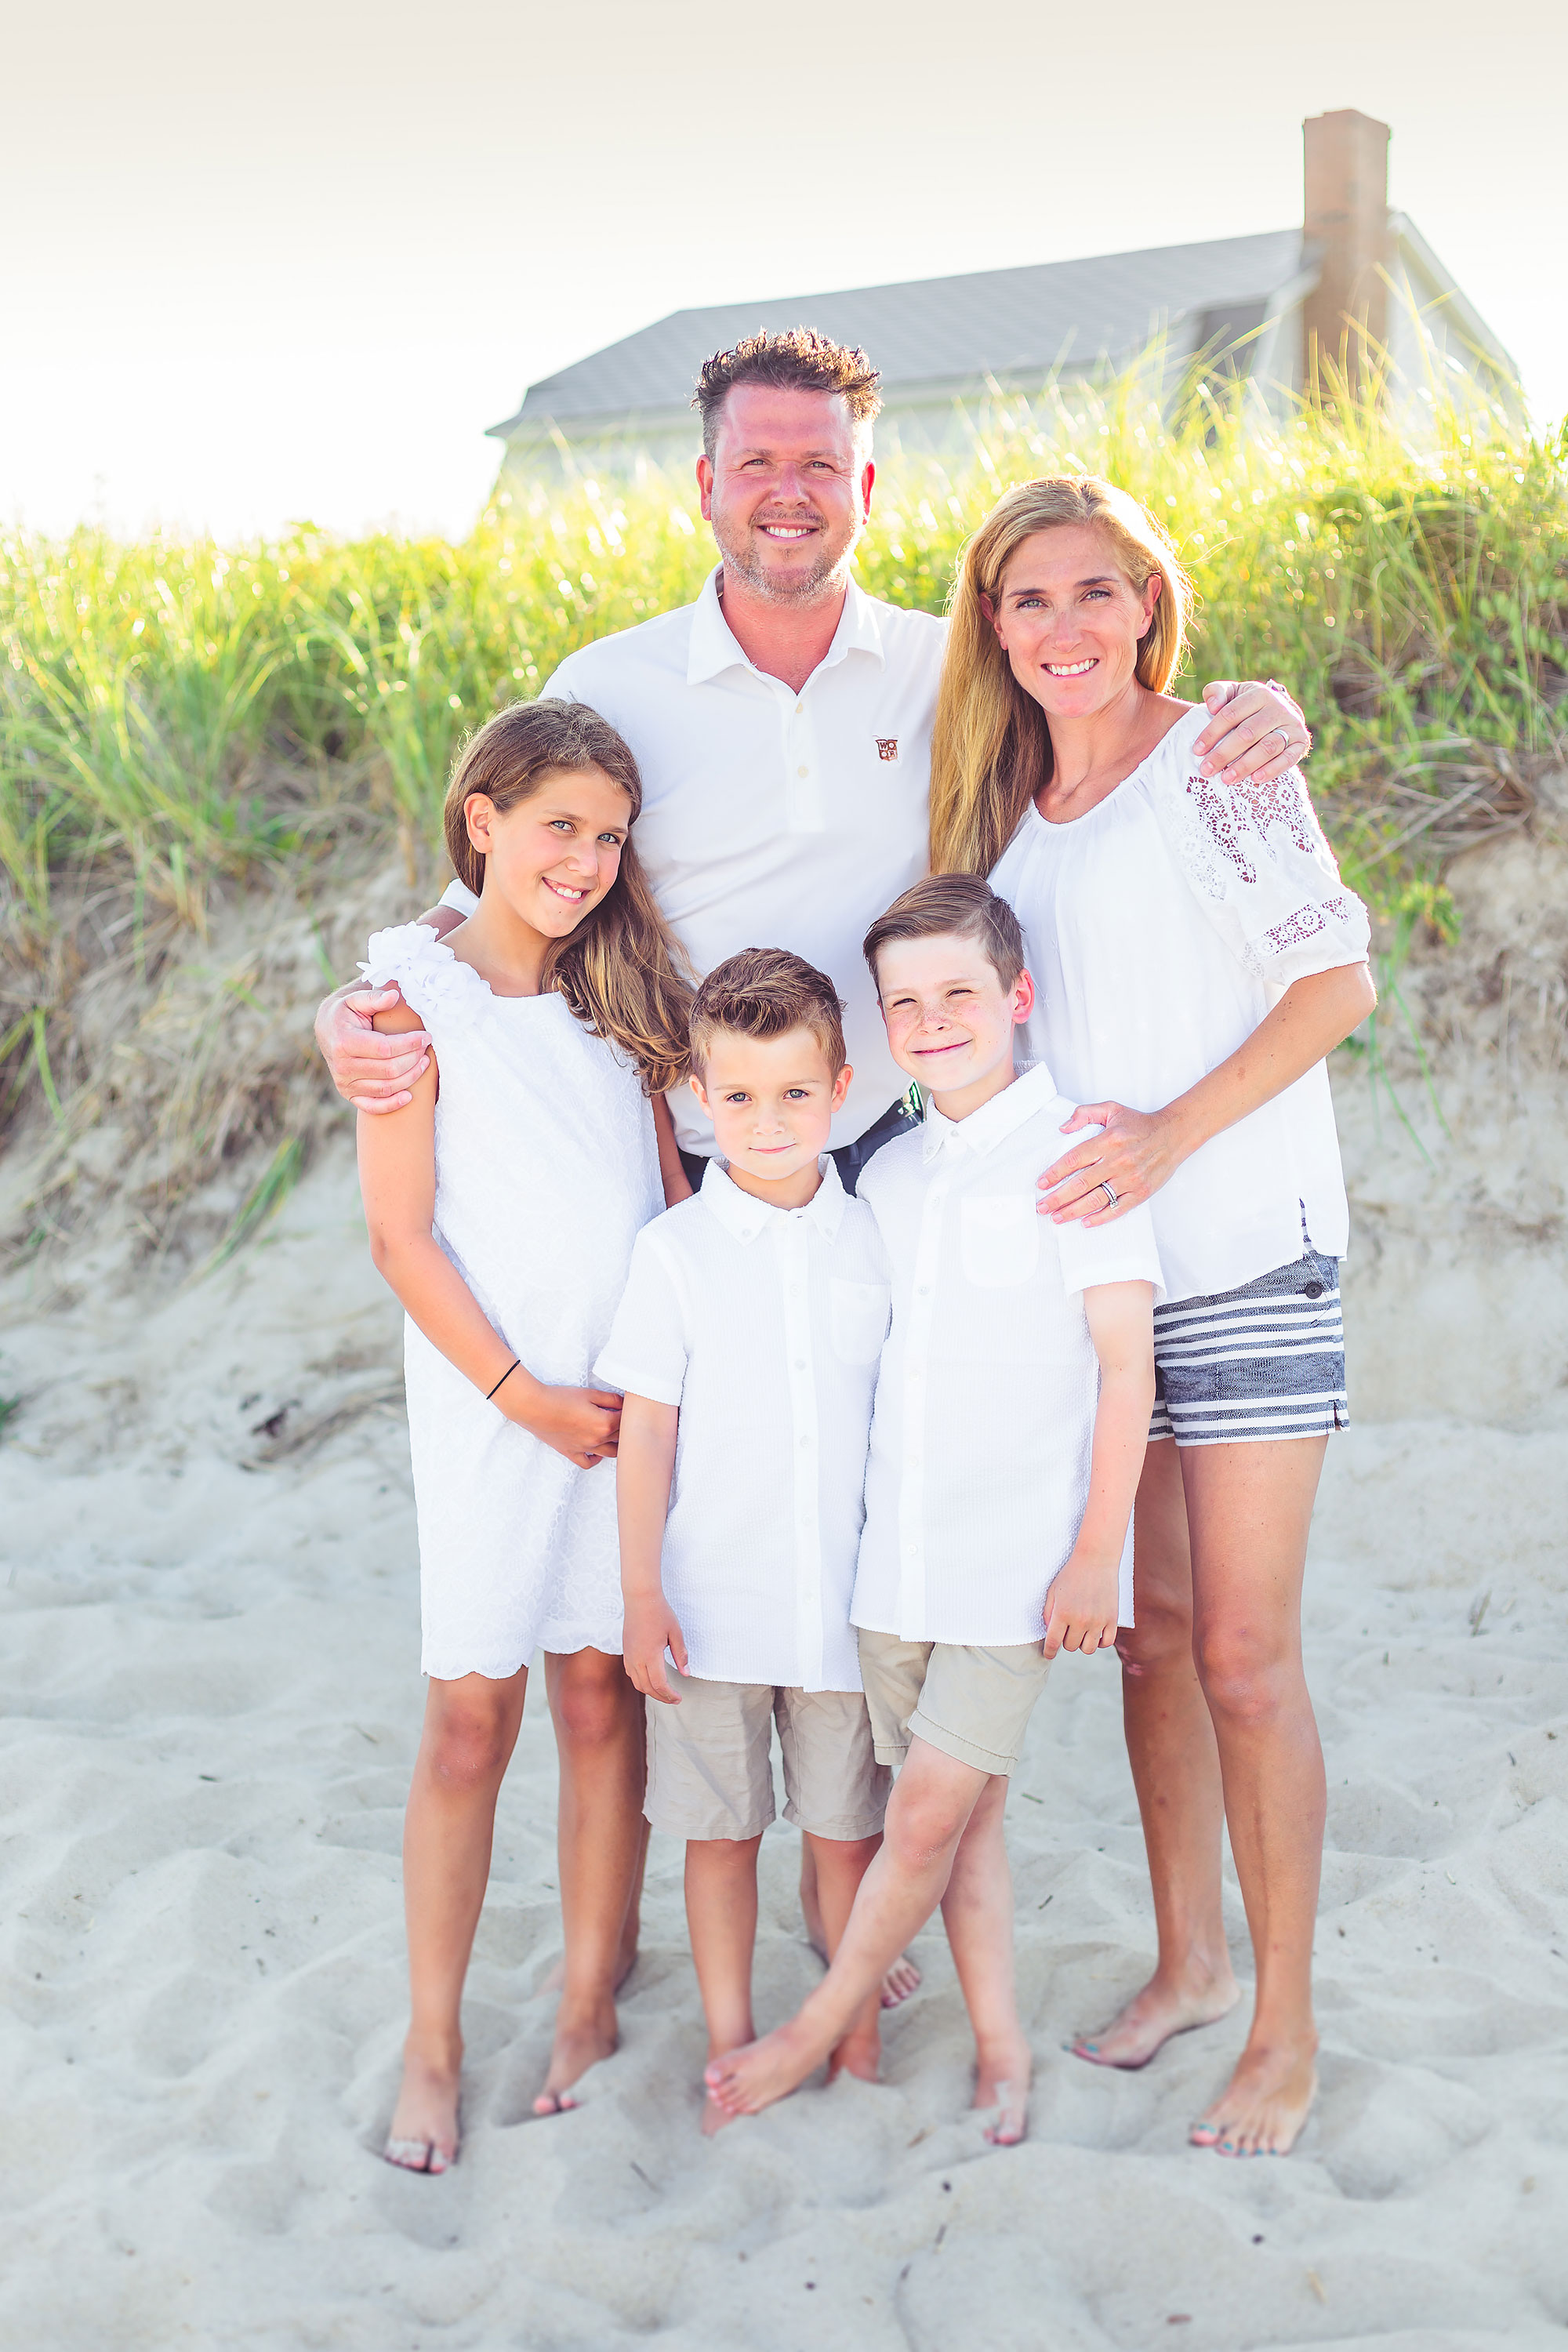 Seabrook Beach Family Portraits | Stephen Grant Photography